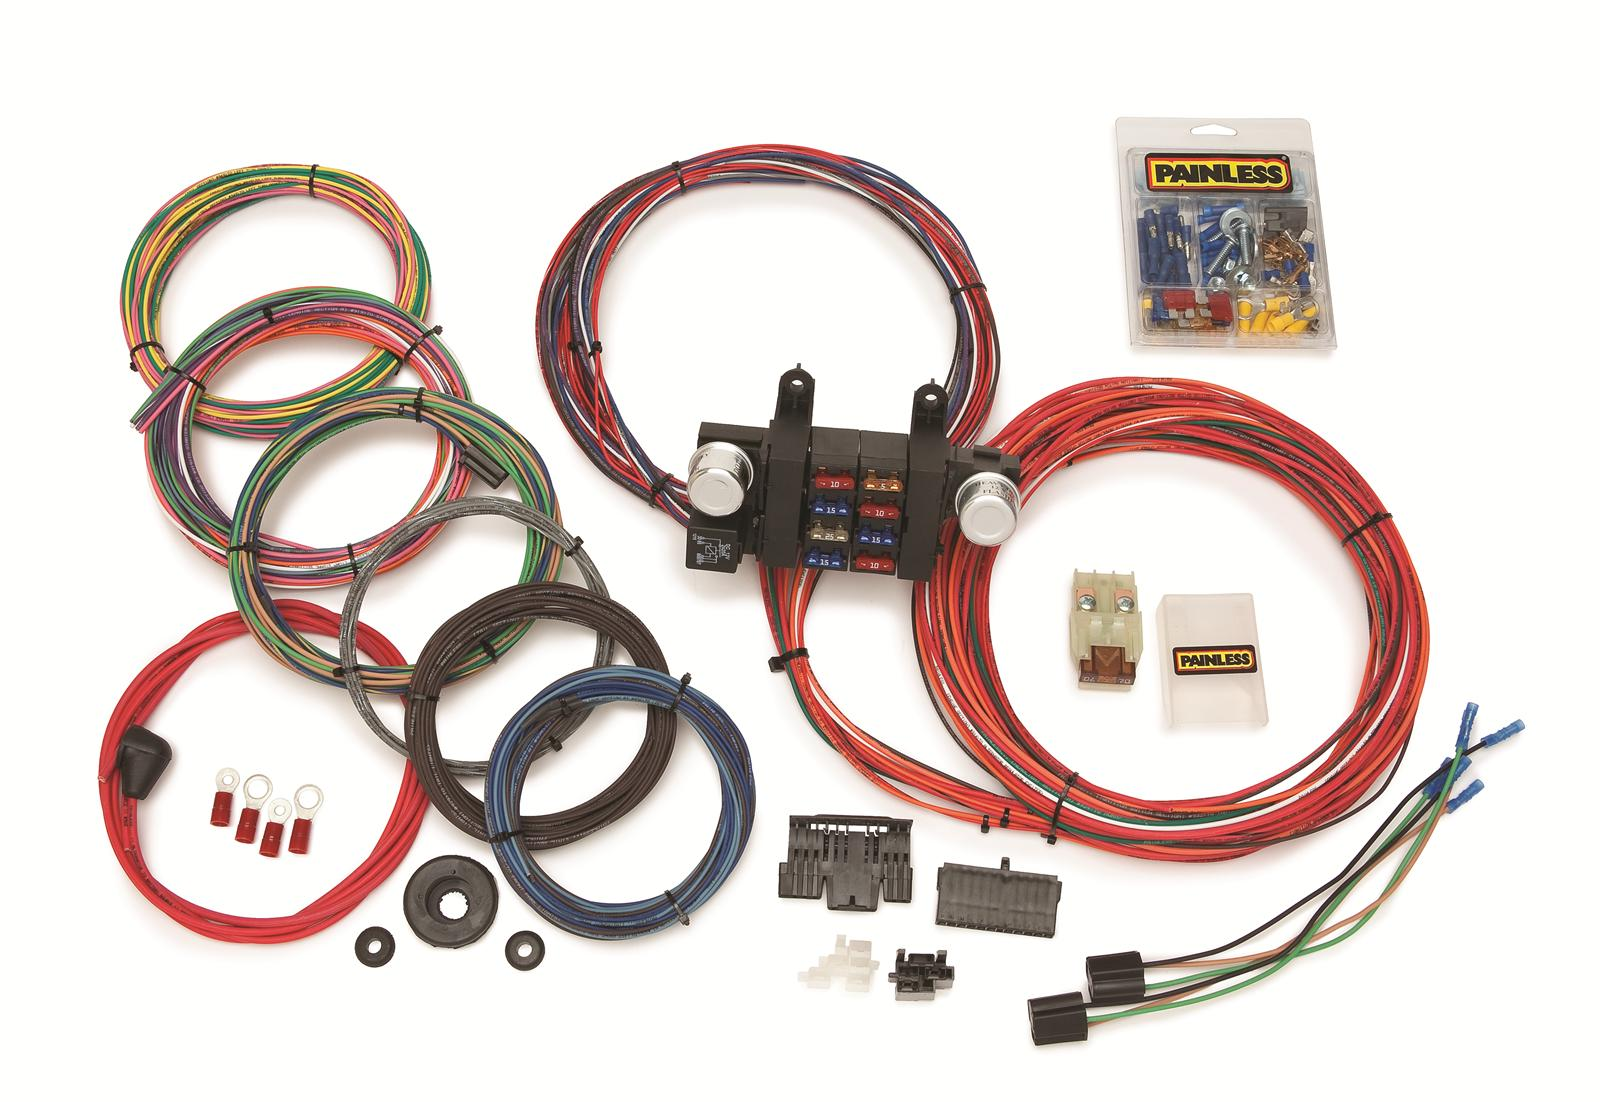 painless wiring ford diagram distributor 10307 harness 8 circuit front ebay